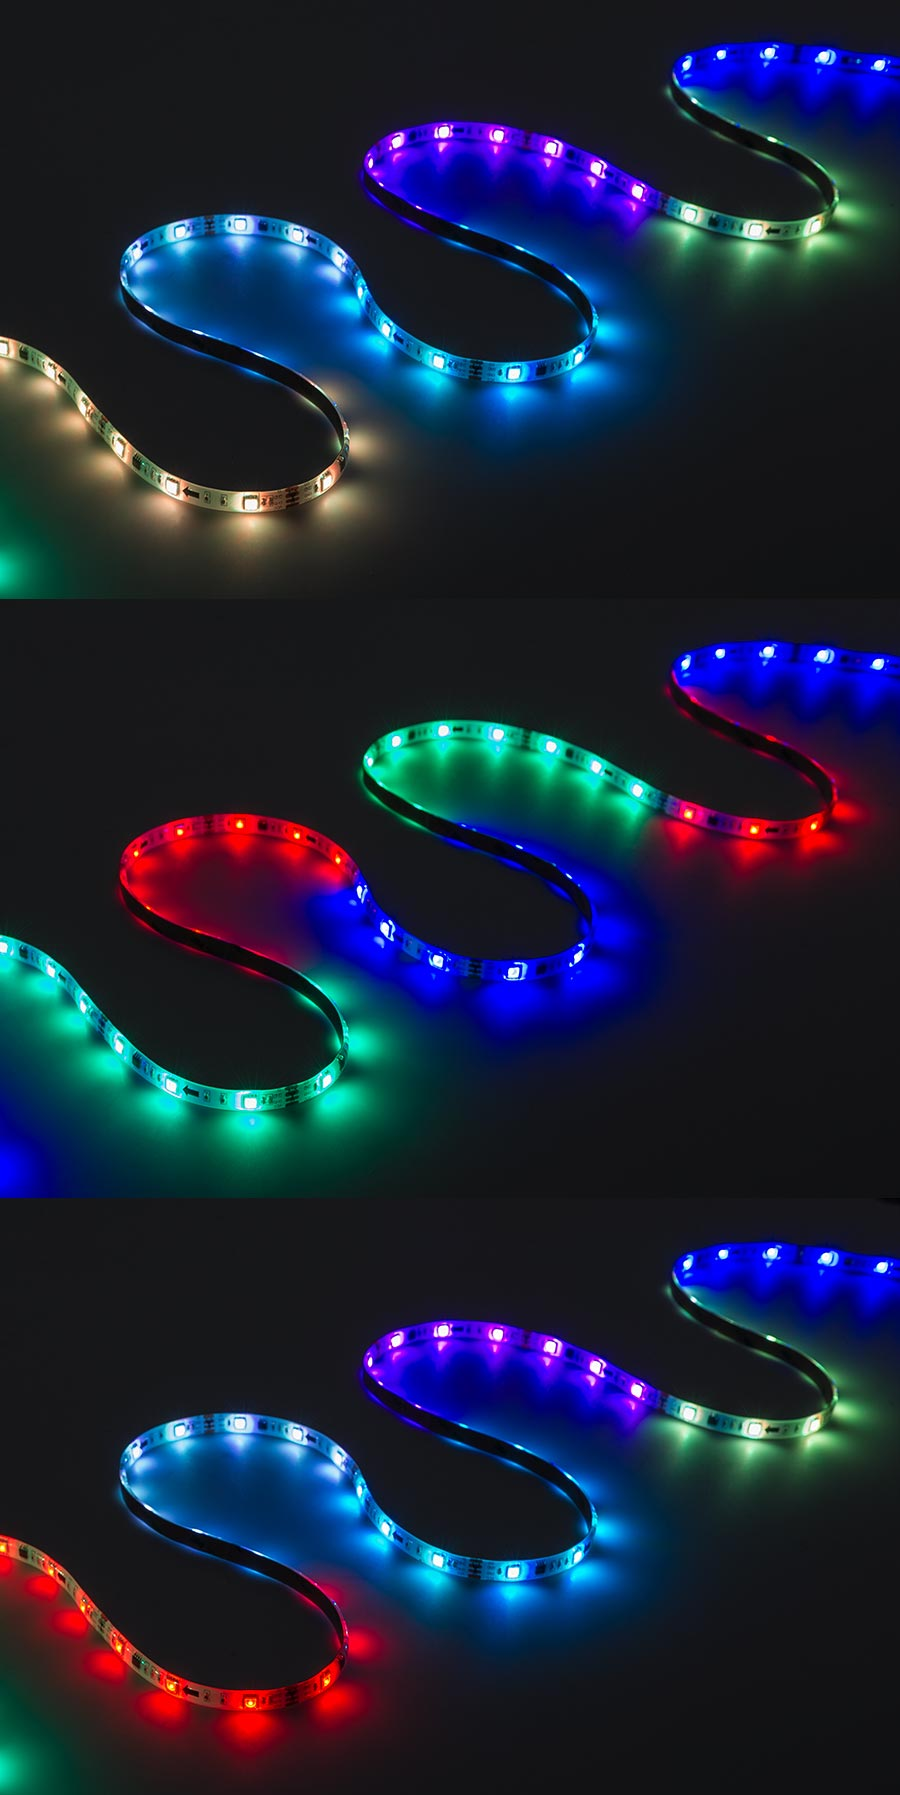 Awesome Waterproof Color Chasing LED Light Strips With Multi Color LEDs   16.40ft  (5m) Outdoor LED Tape Light With 18 SMDs/ft., 3 Chip RGB SMD LED 5050: On  Showing ...